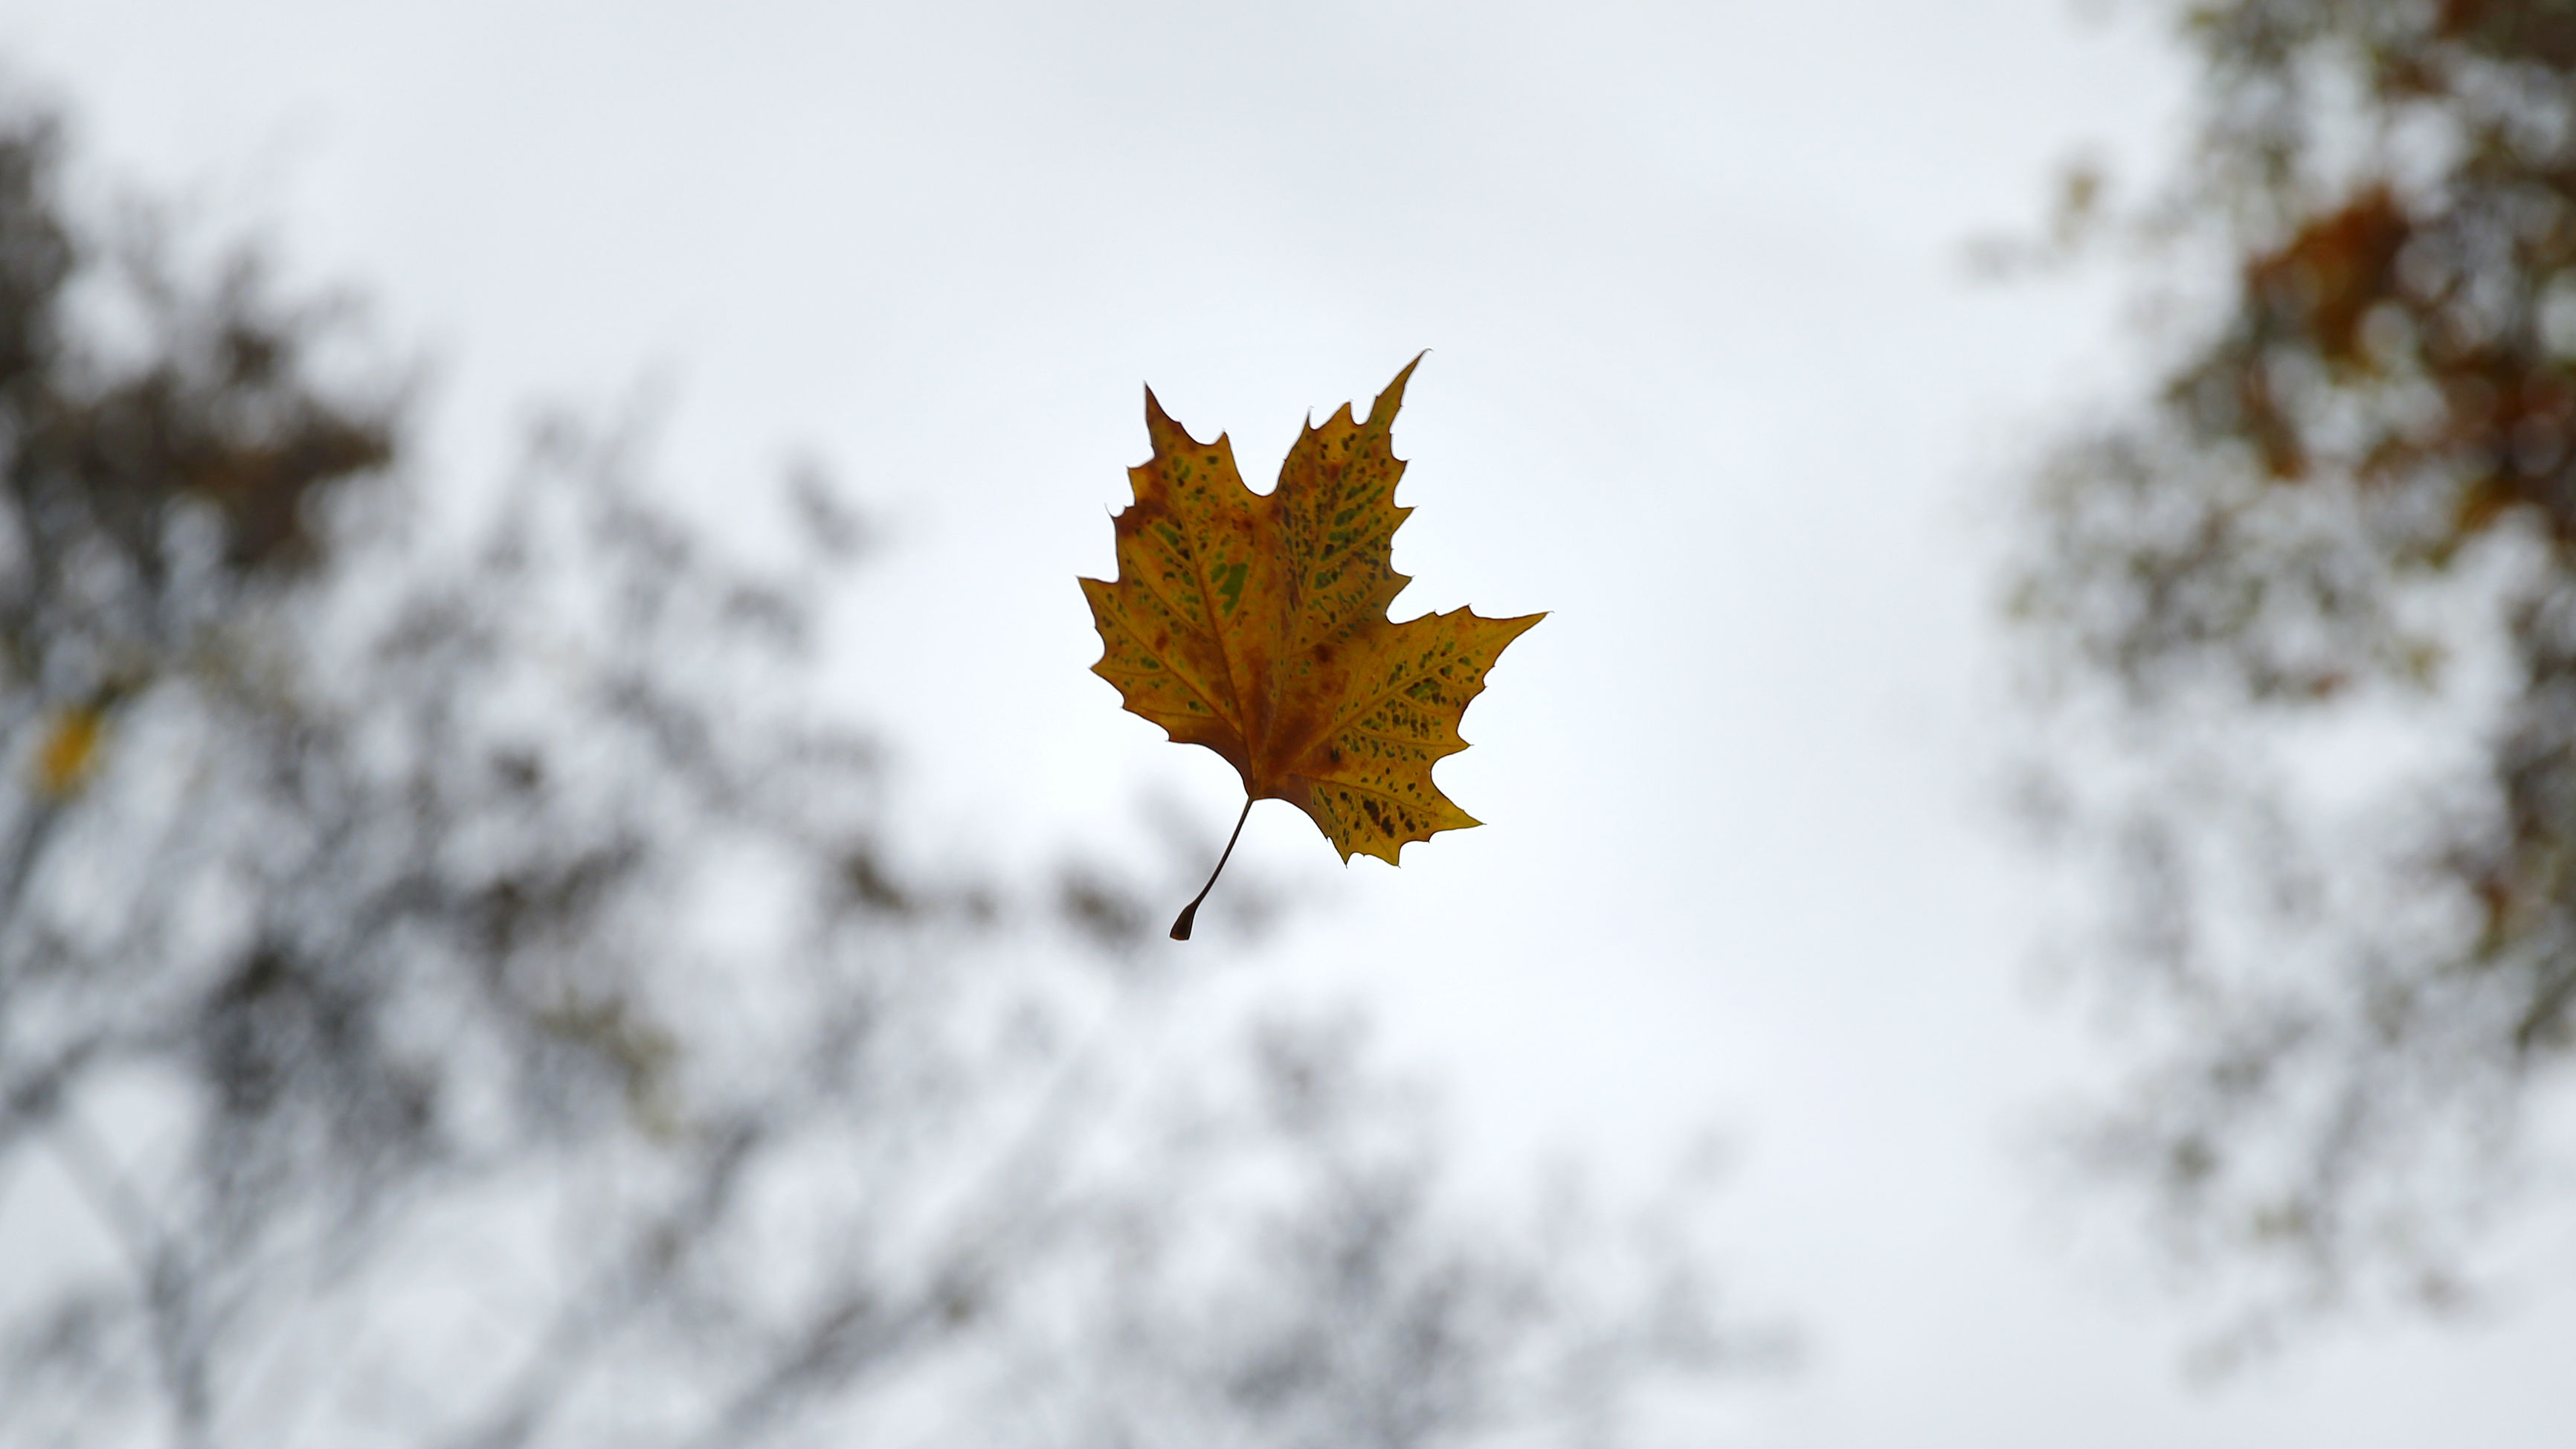 2012A leaf falls from a tree on an autumnal day in central London, November 20, 2012.